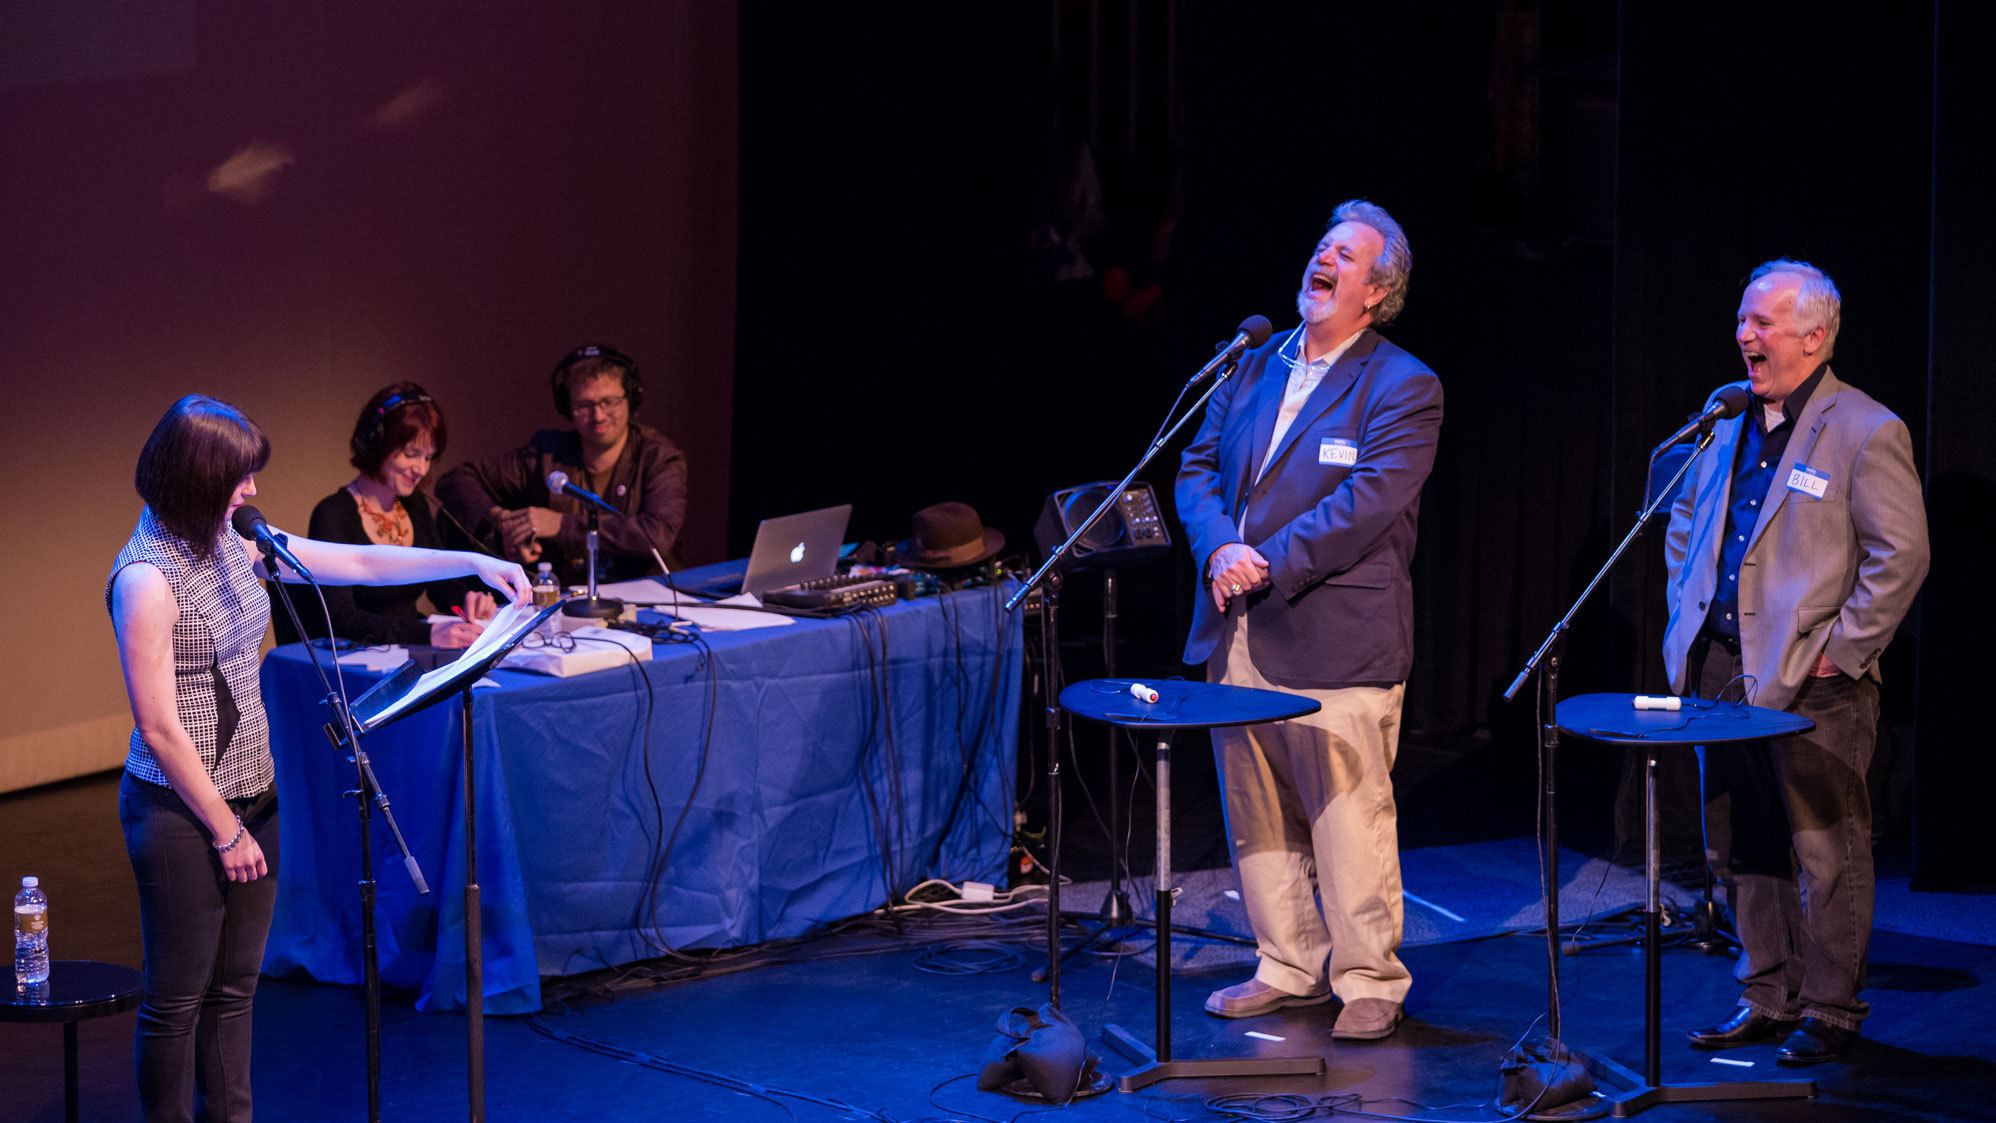 Bill Corbett (right) and Kevin Murphy, of RiffTrax, play a round at the Fitzgerald Theater in St. Paul, Minn.